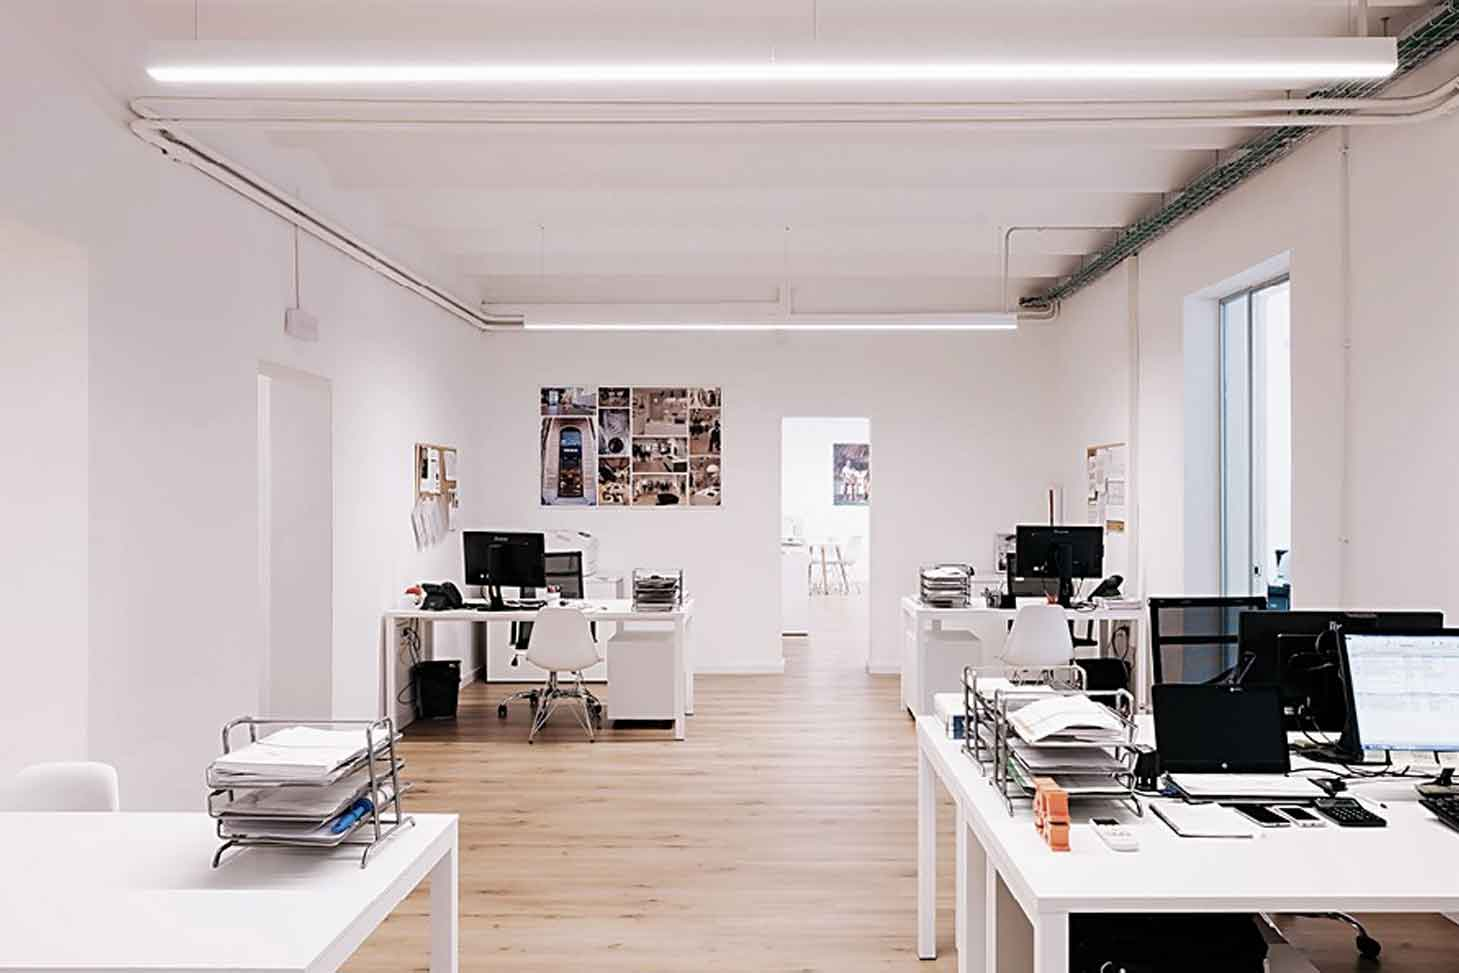 showroom.ikks.retail.architecture8.jpg